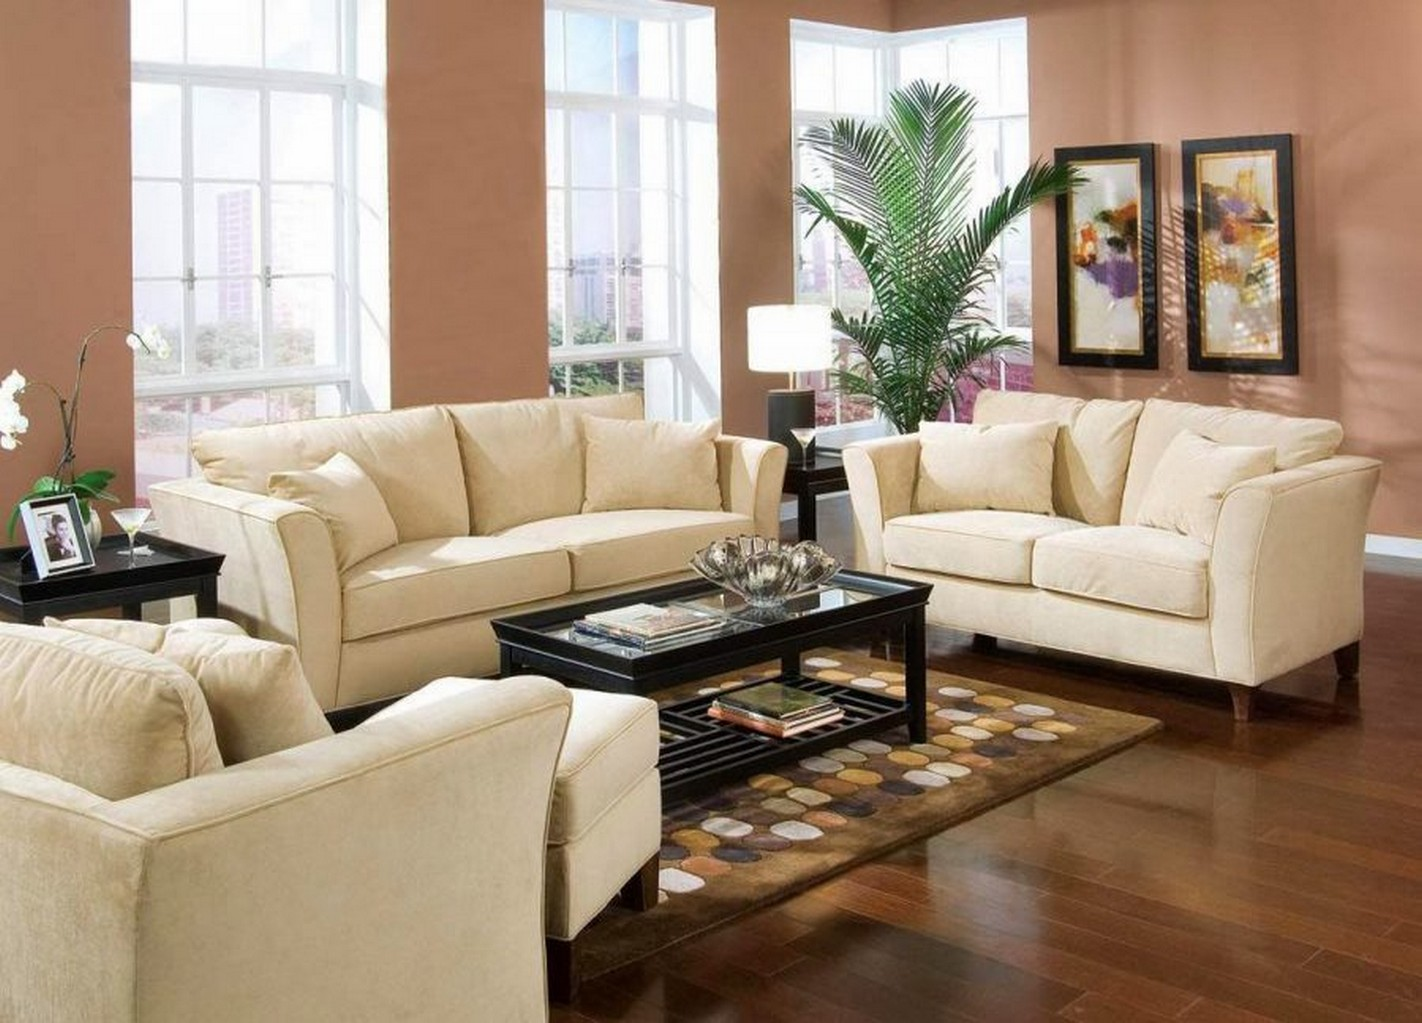 Small living room furniture ideas felish home project for Sofa set designs for small living room